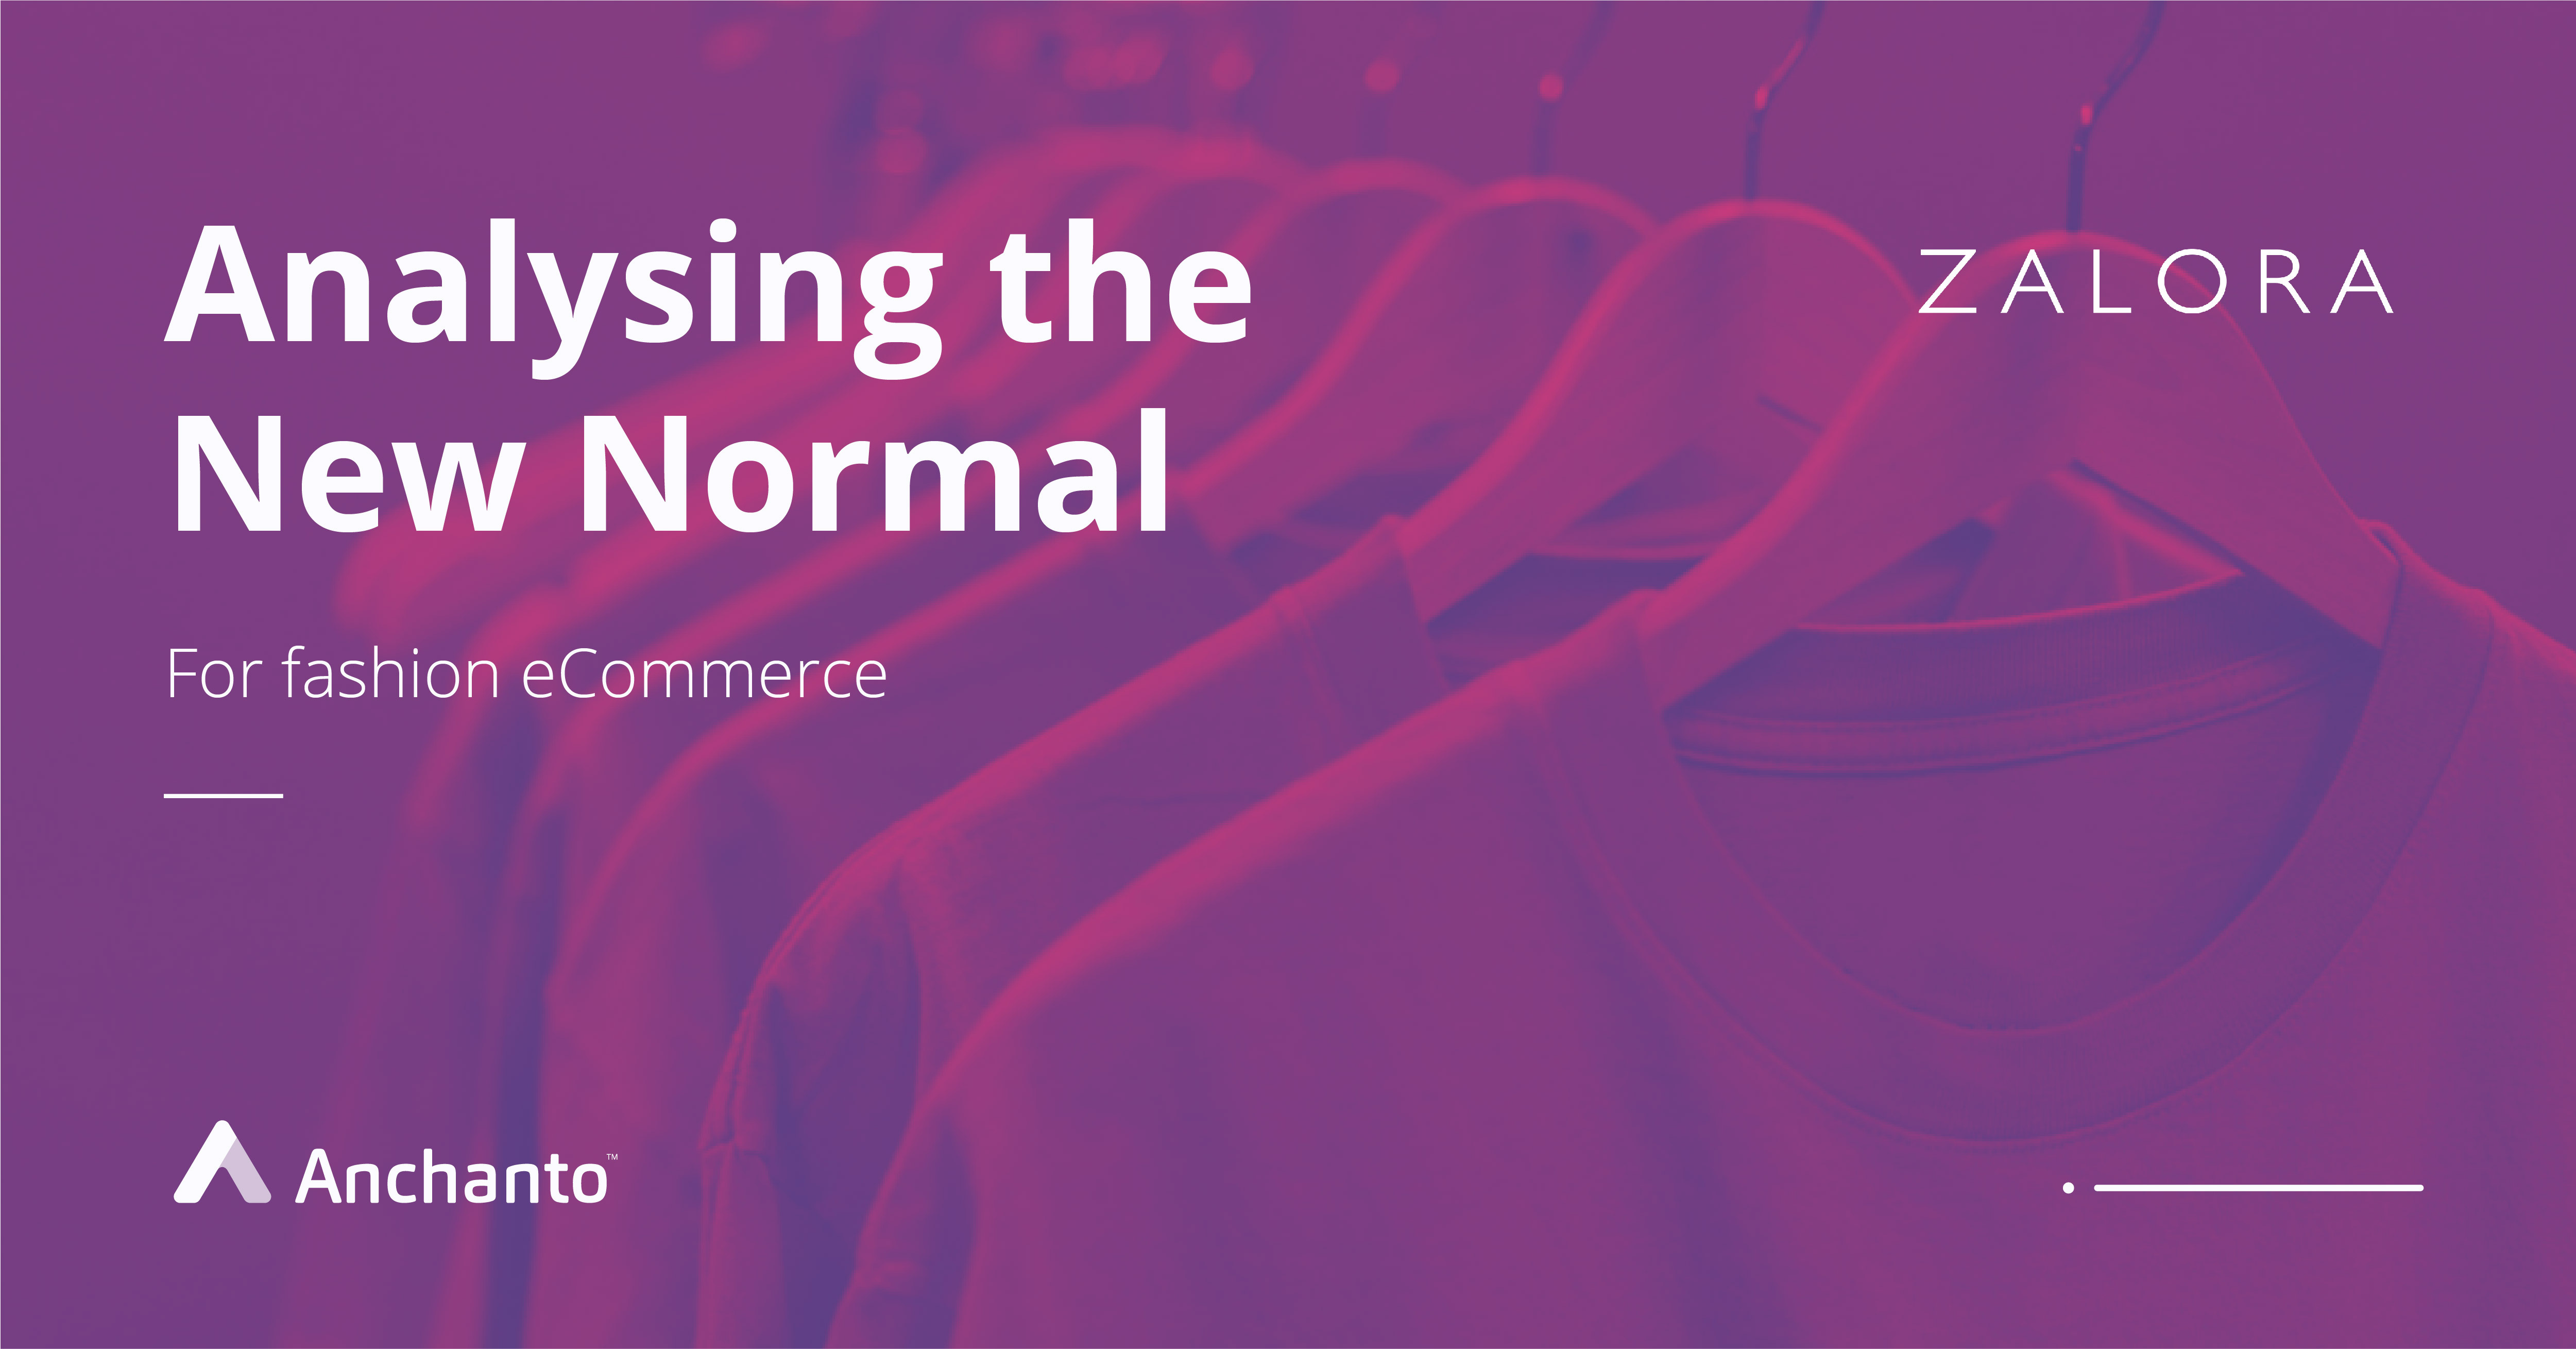 Analysing The New Normal for Fashion eCommerce